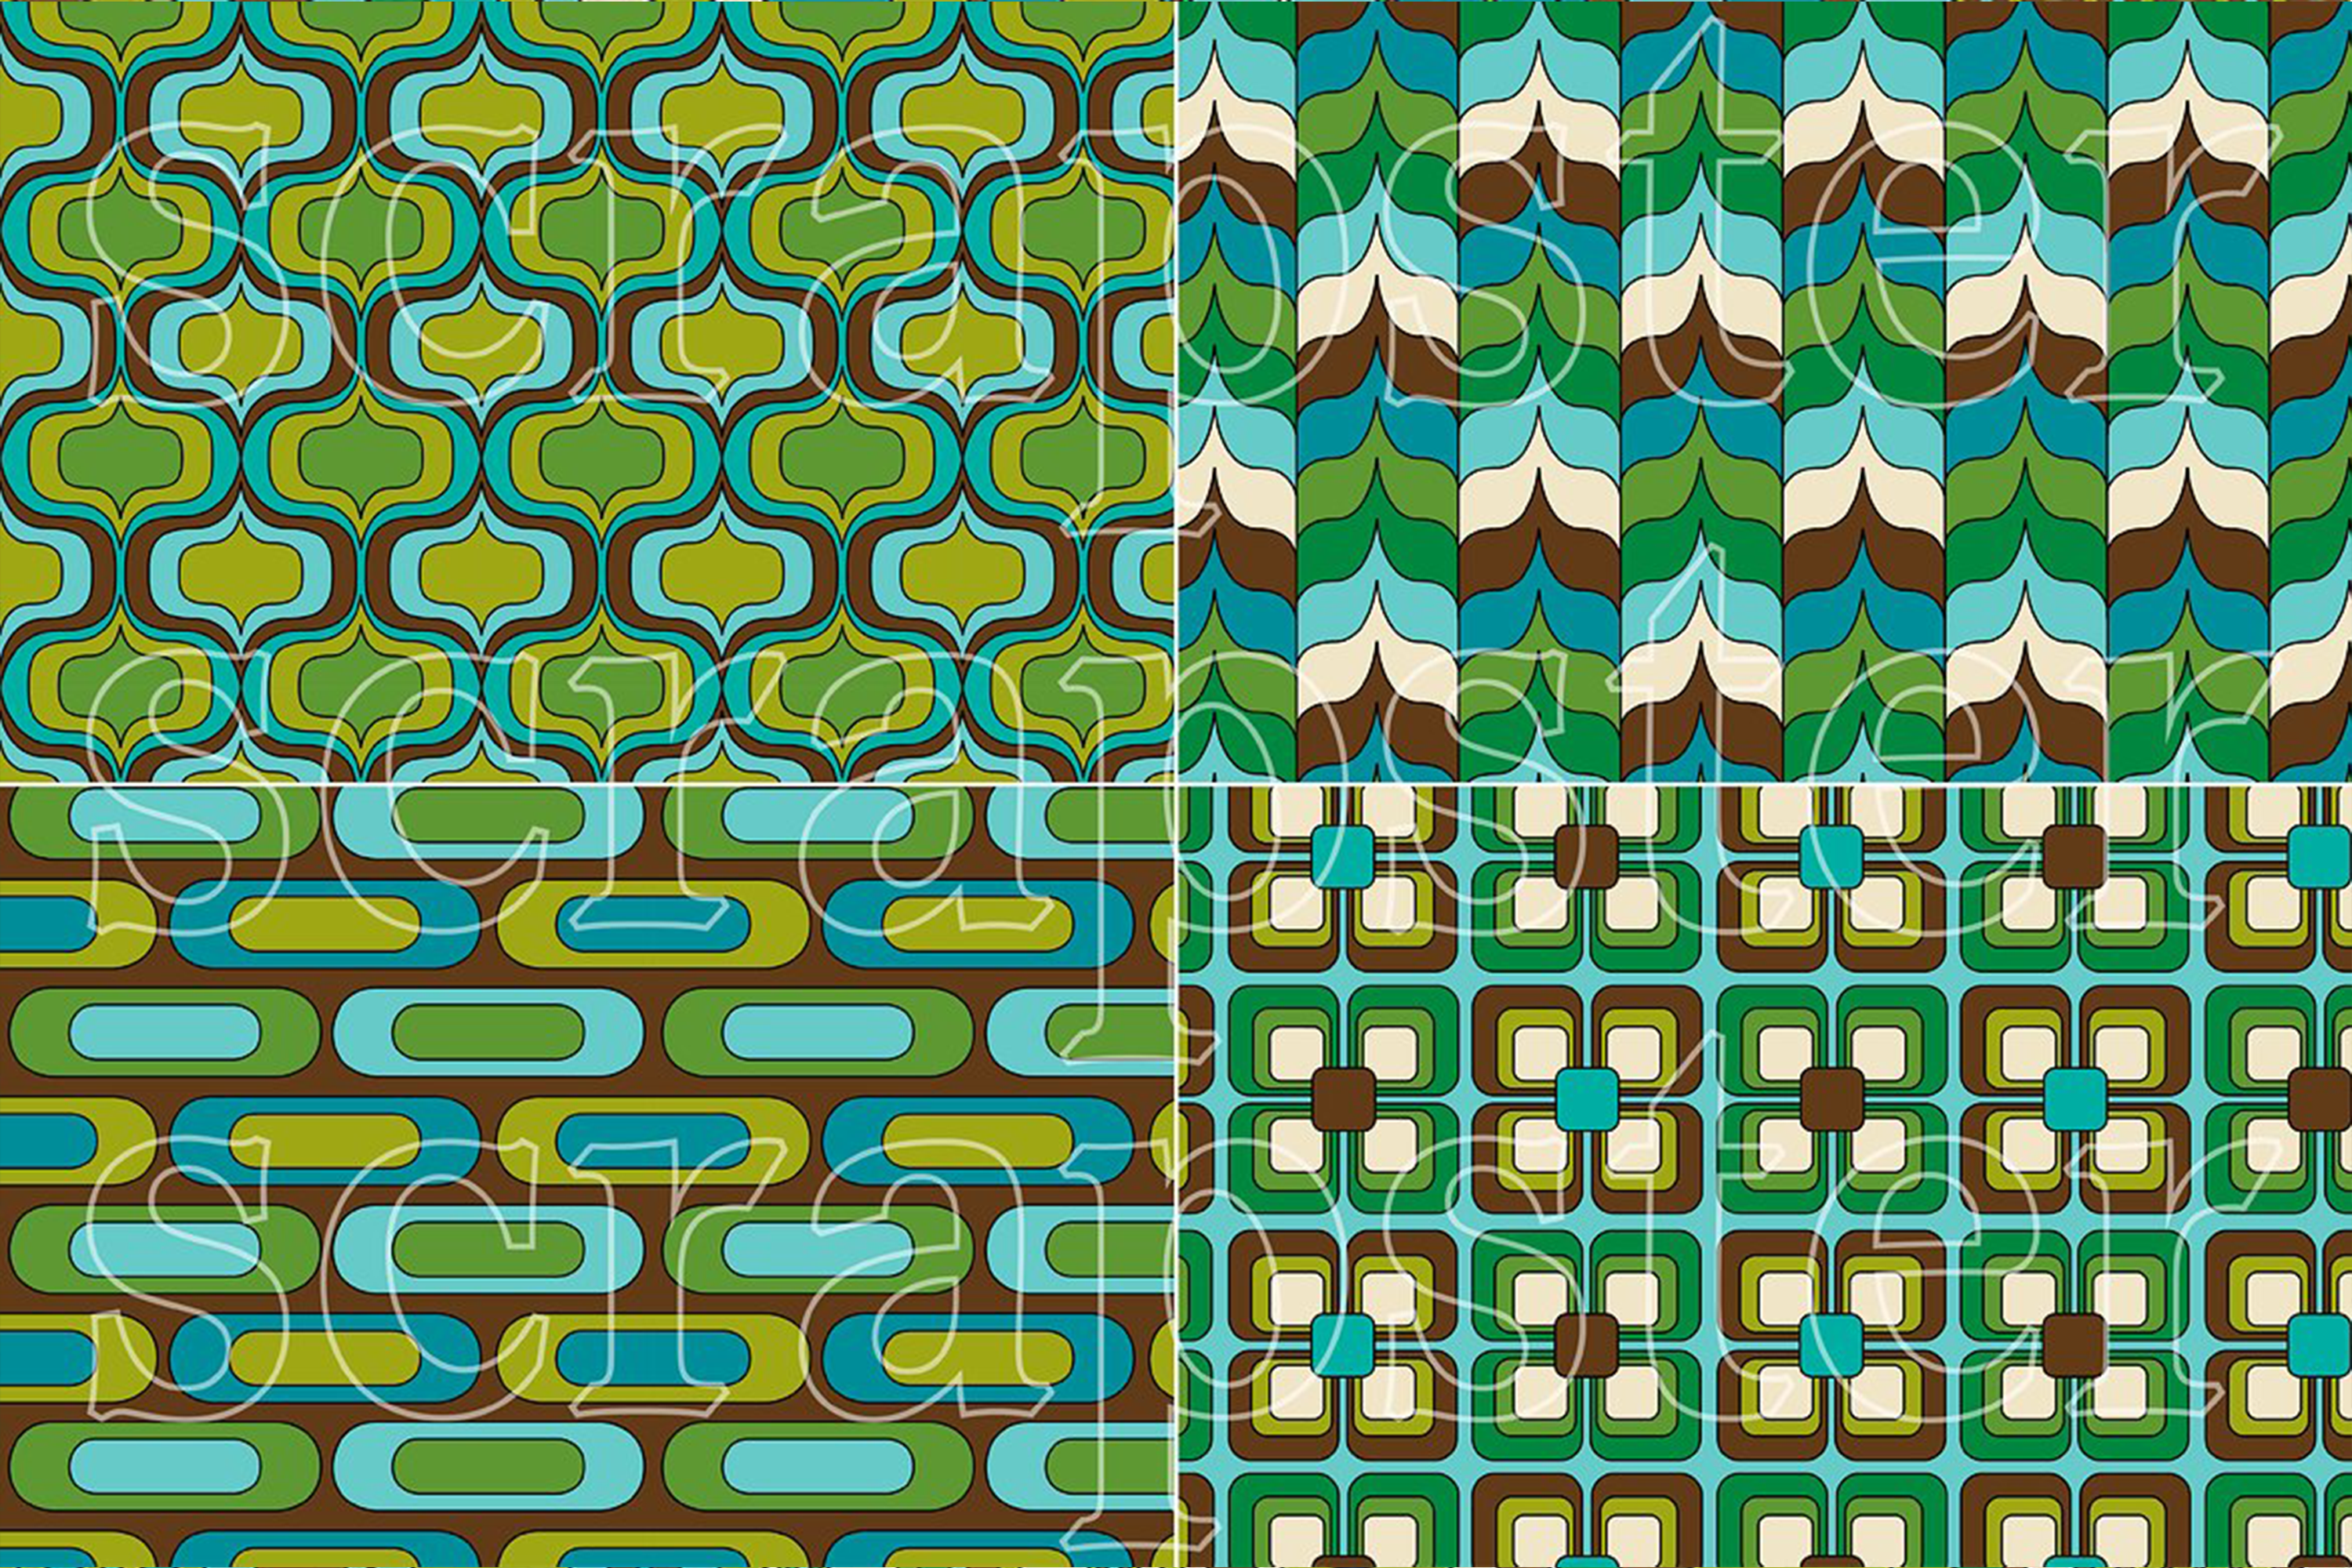 Mod Blue & Green Seamless Patterns example image 2